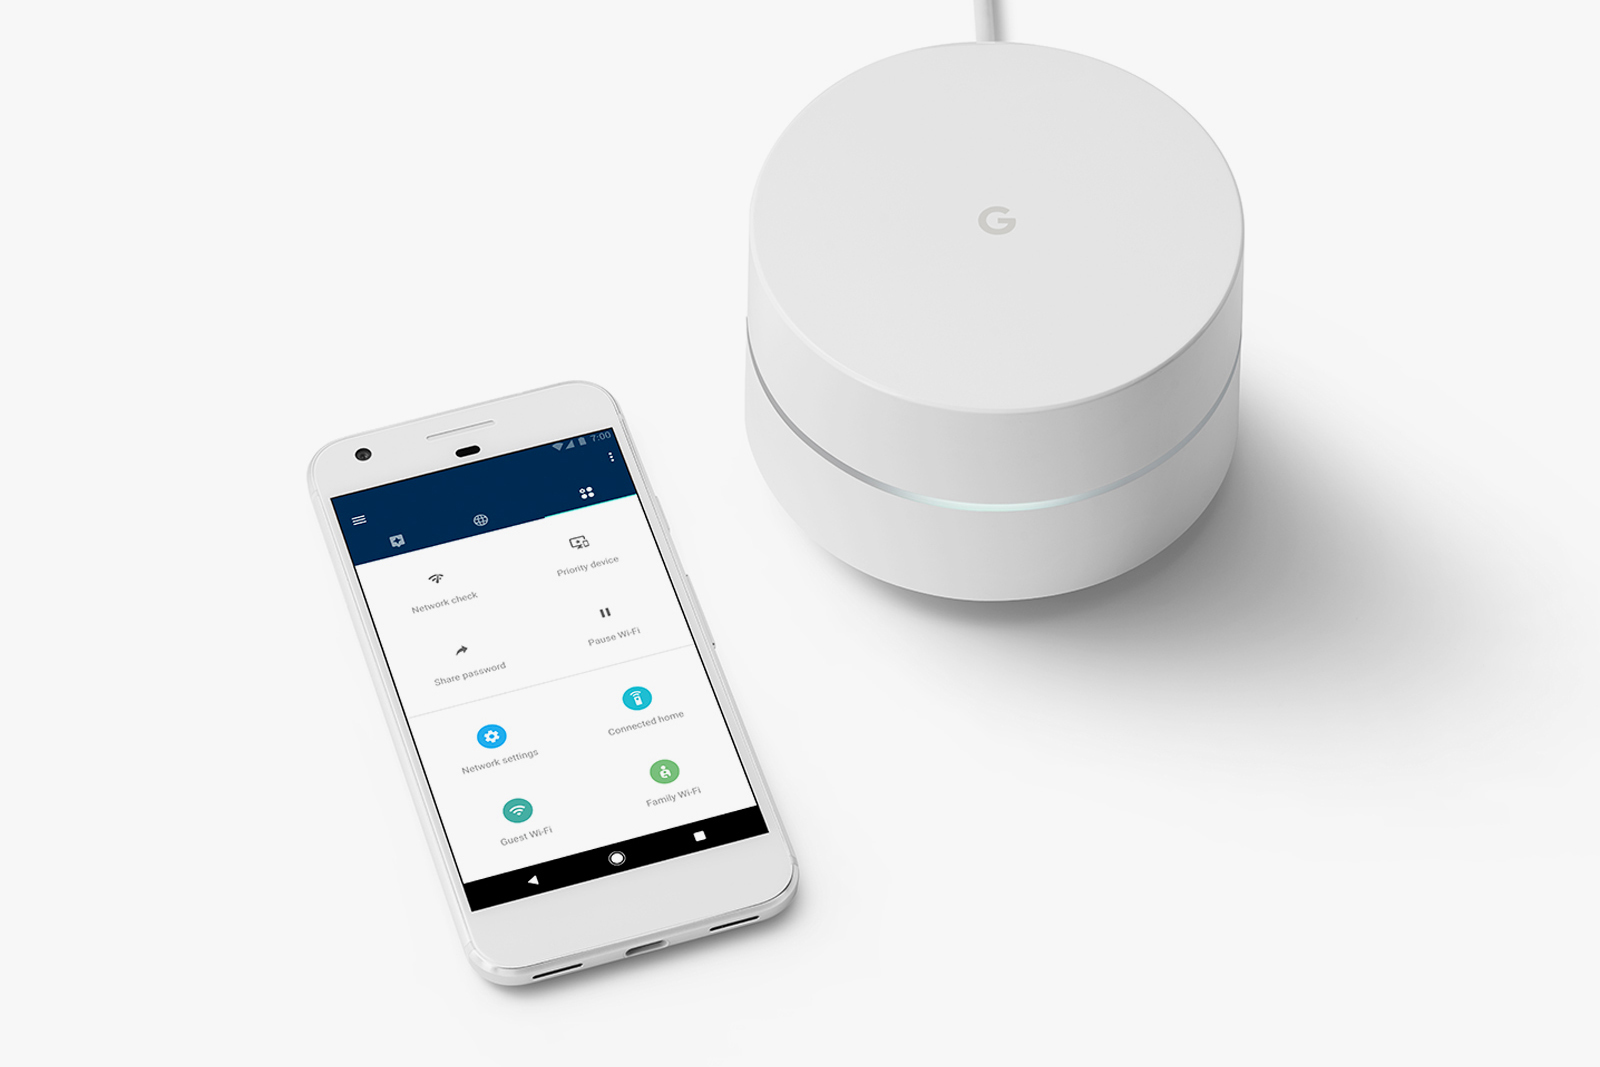 Google Simplifies Wi-Fi With Its Own Router